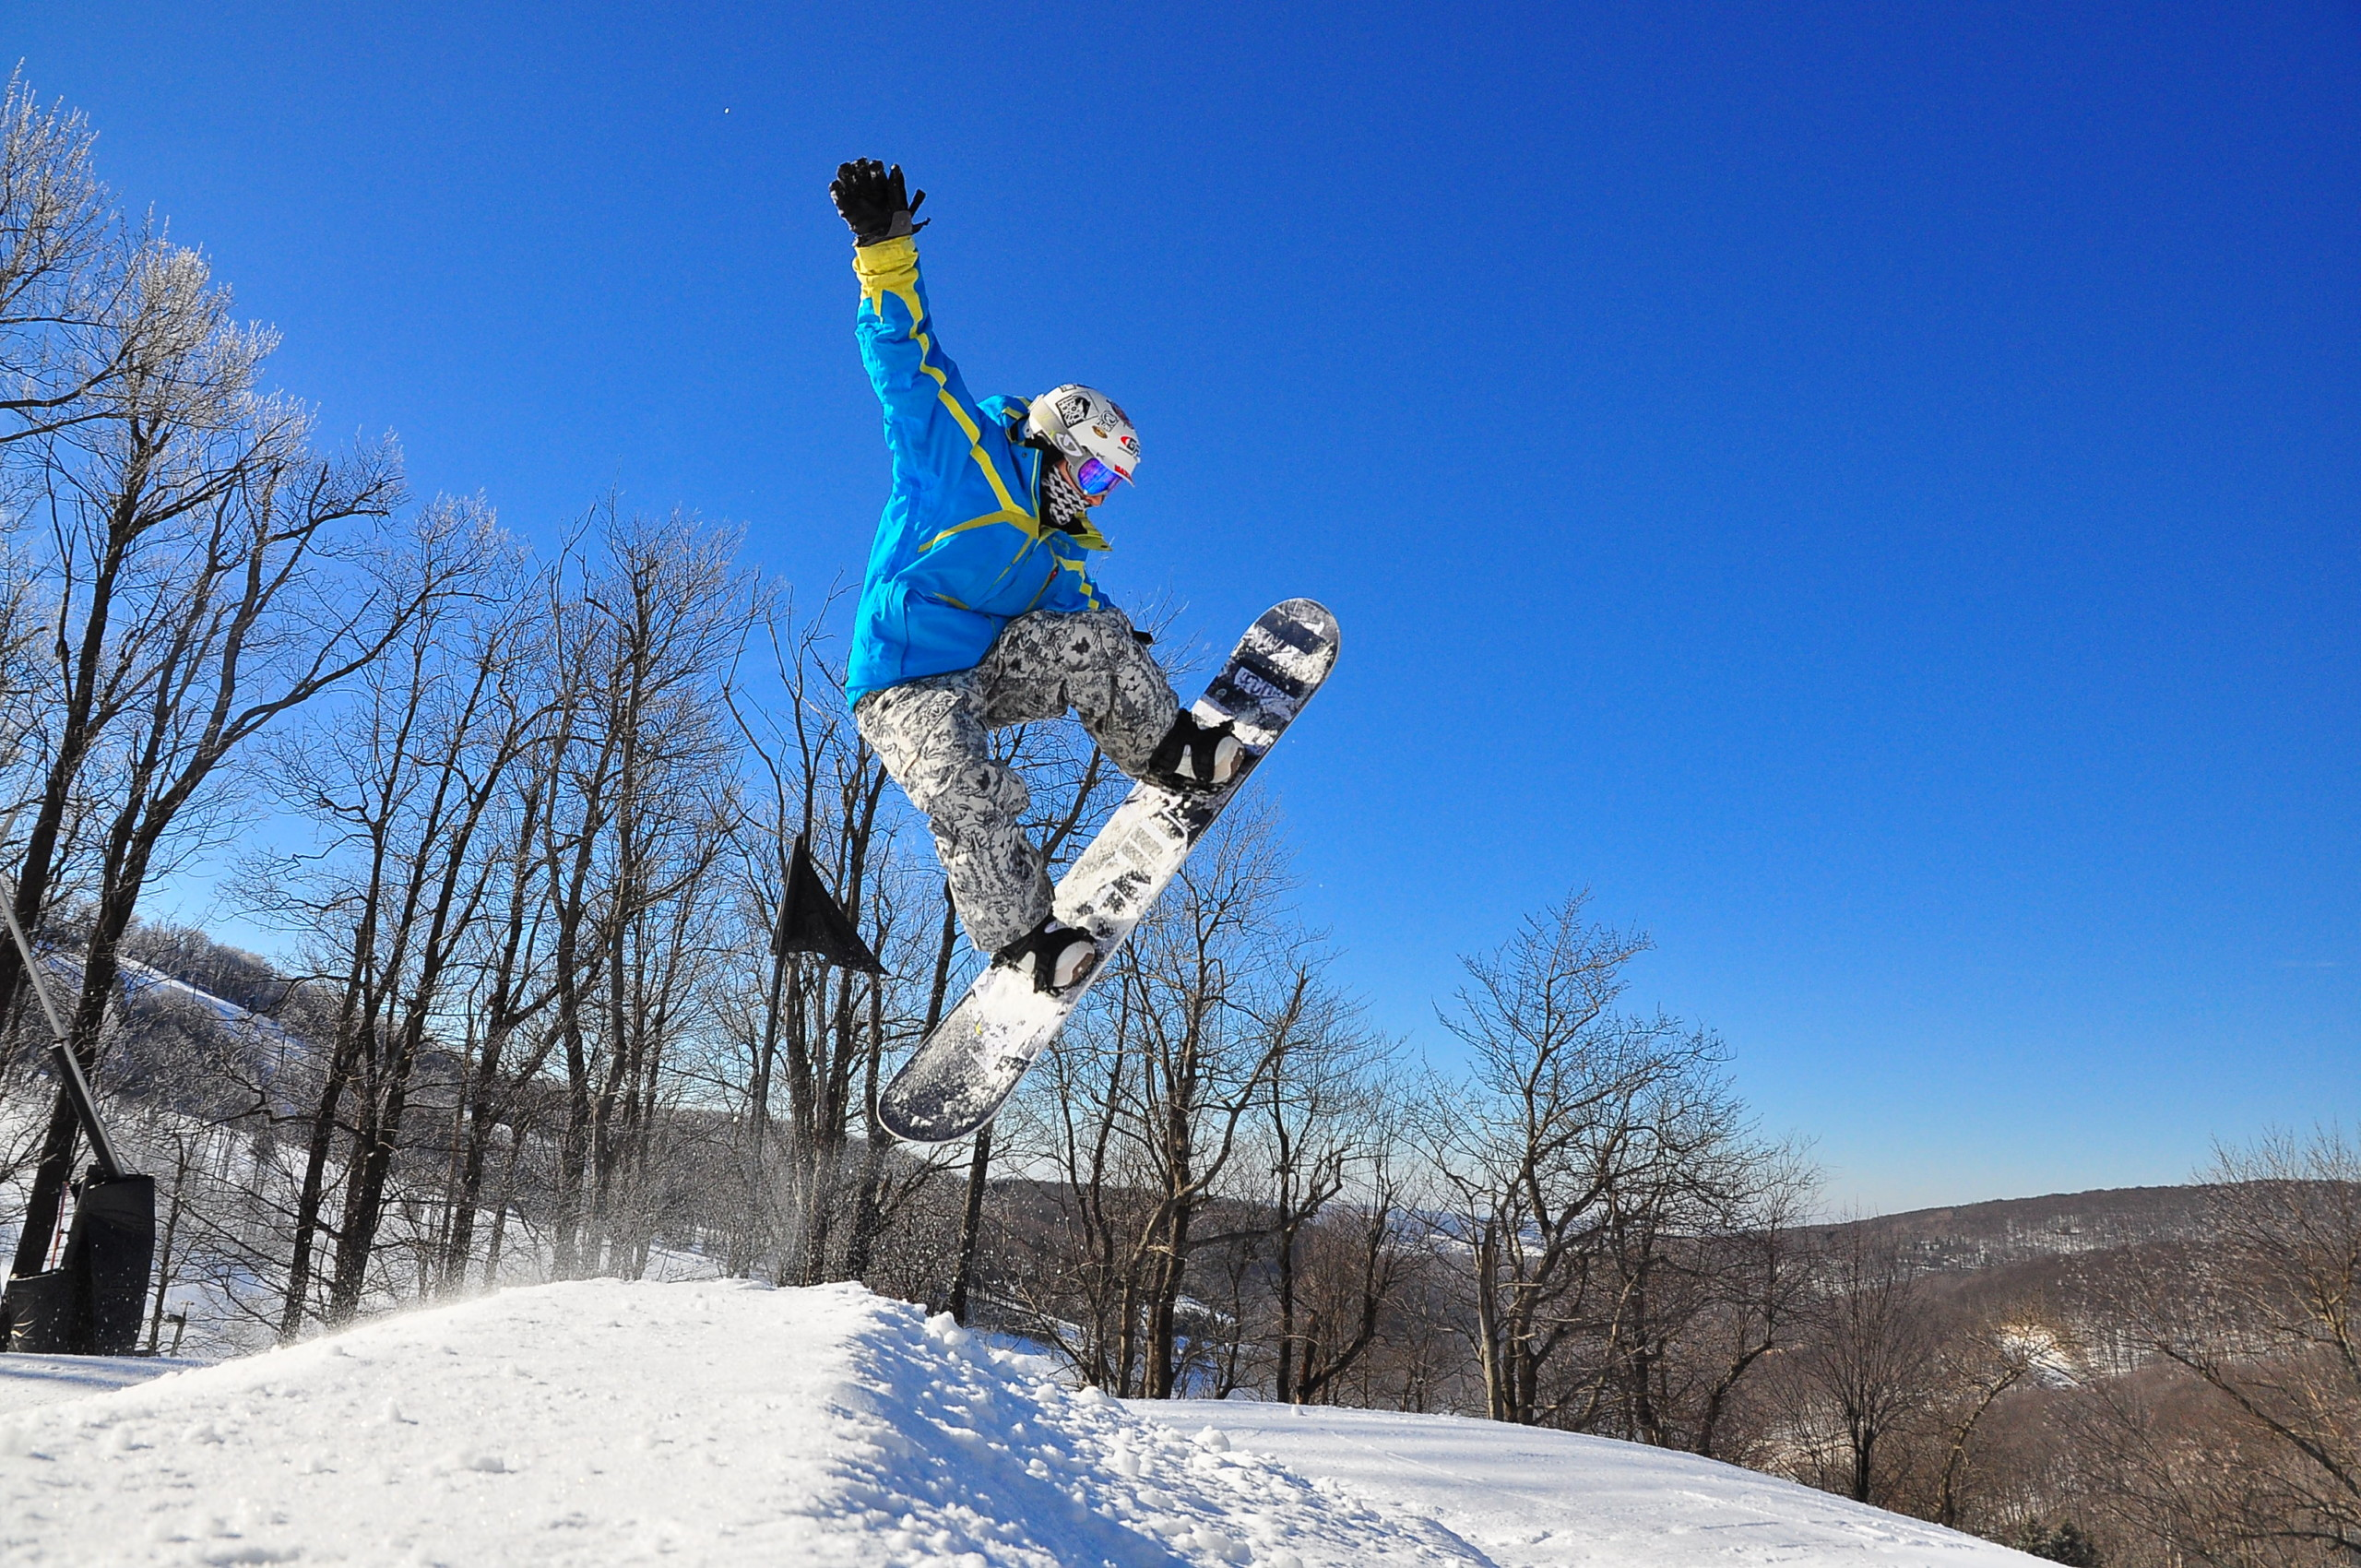 Seven Springs Mountain Resort is home to the only 22ft Superpipe in the East, plus 7 other terrain parks for all skill levels.